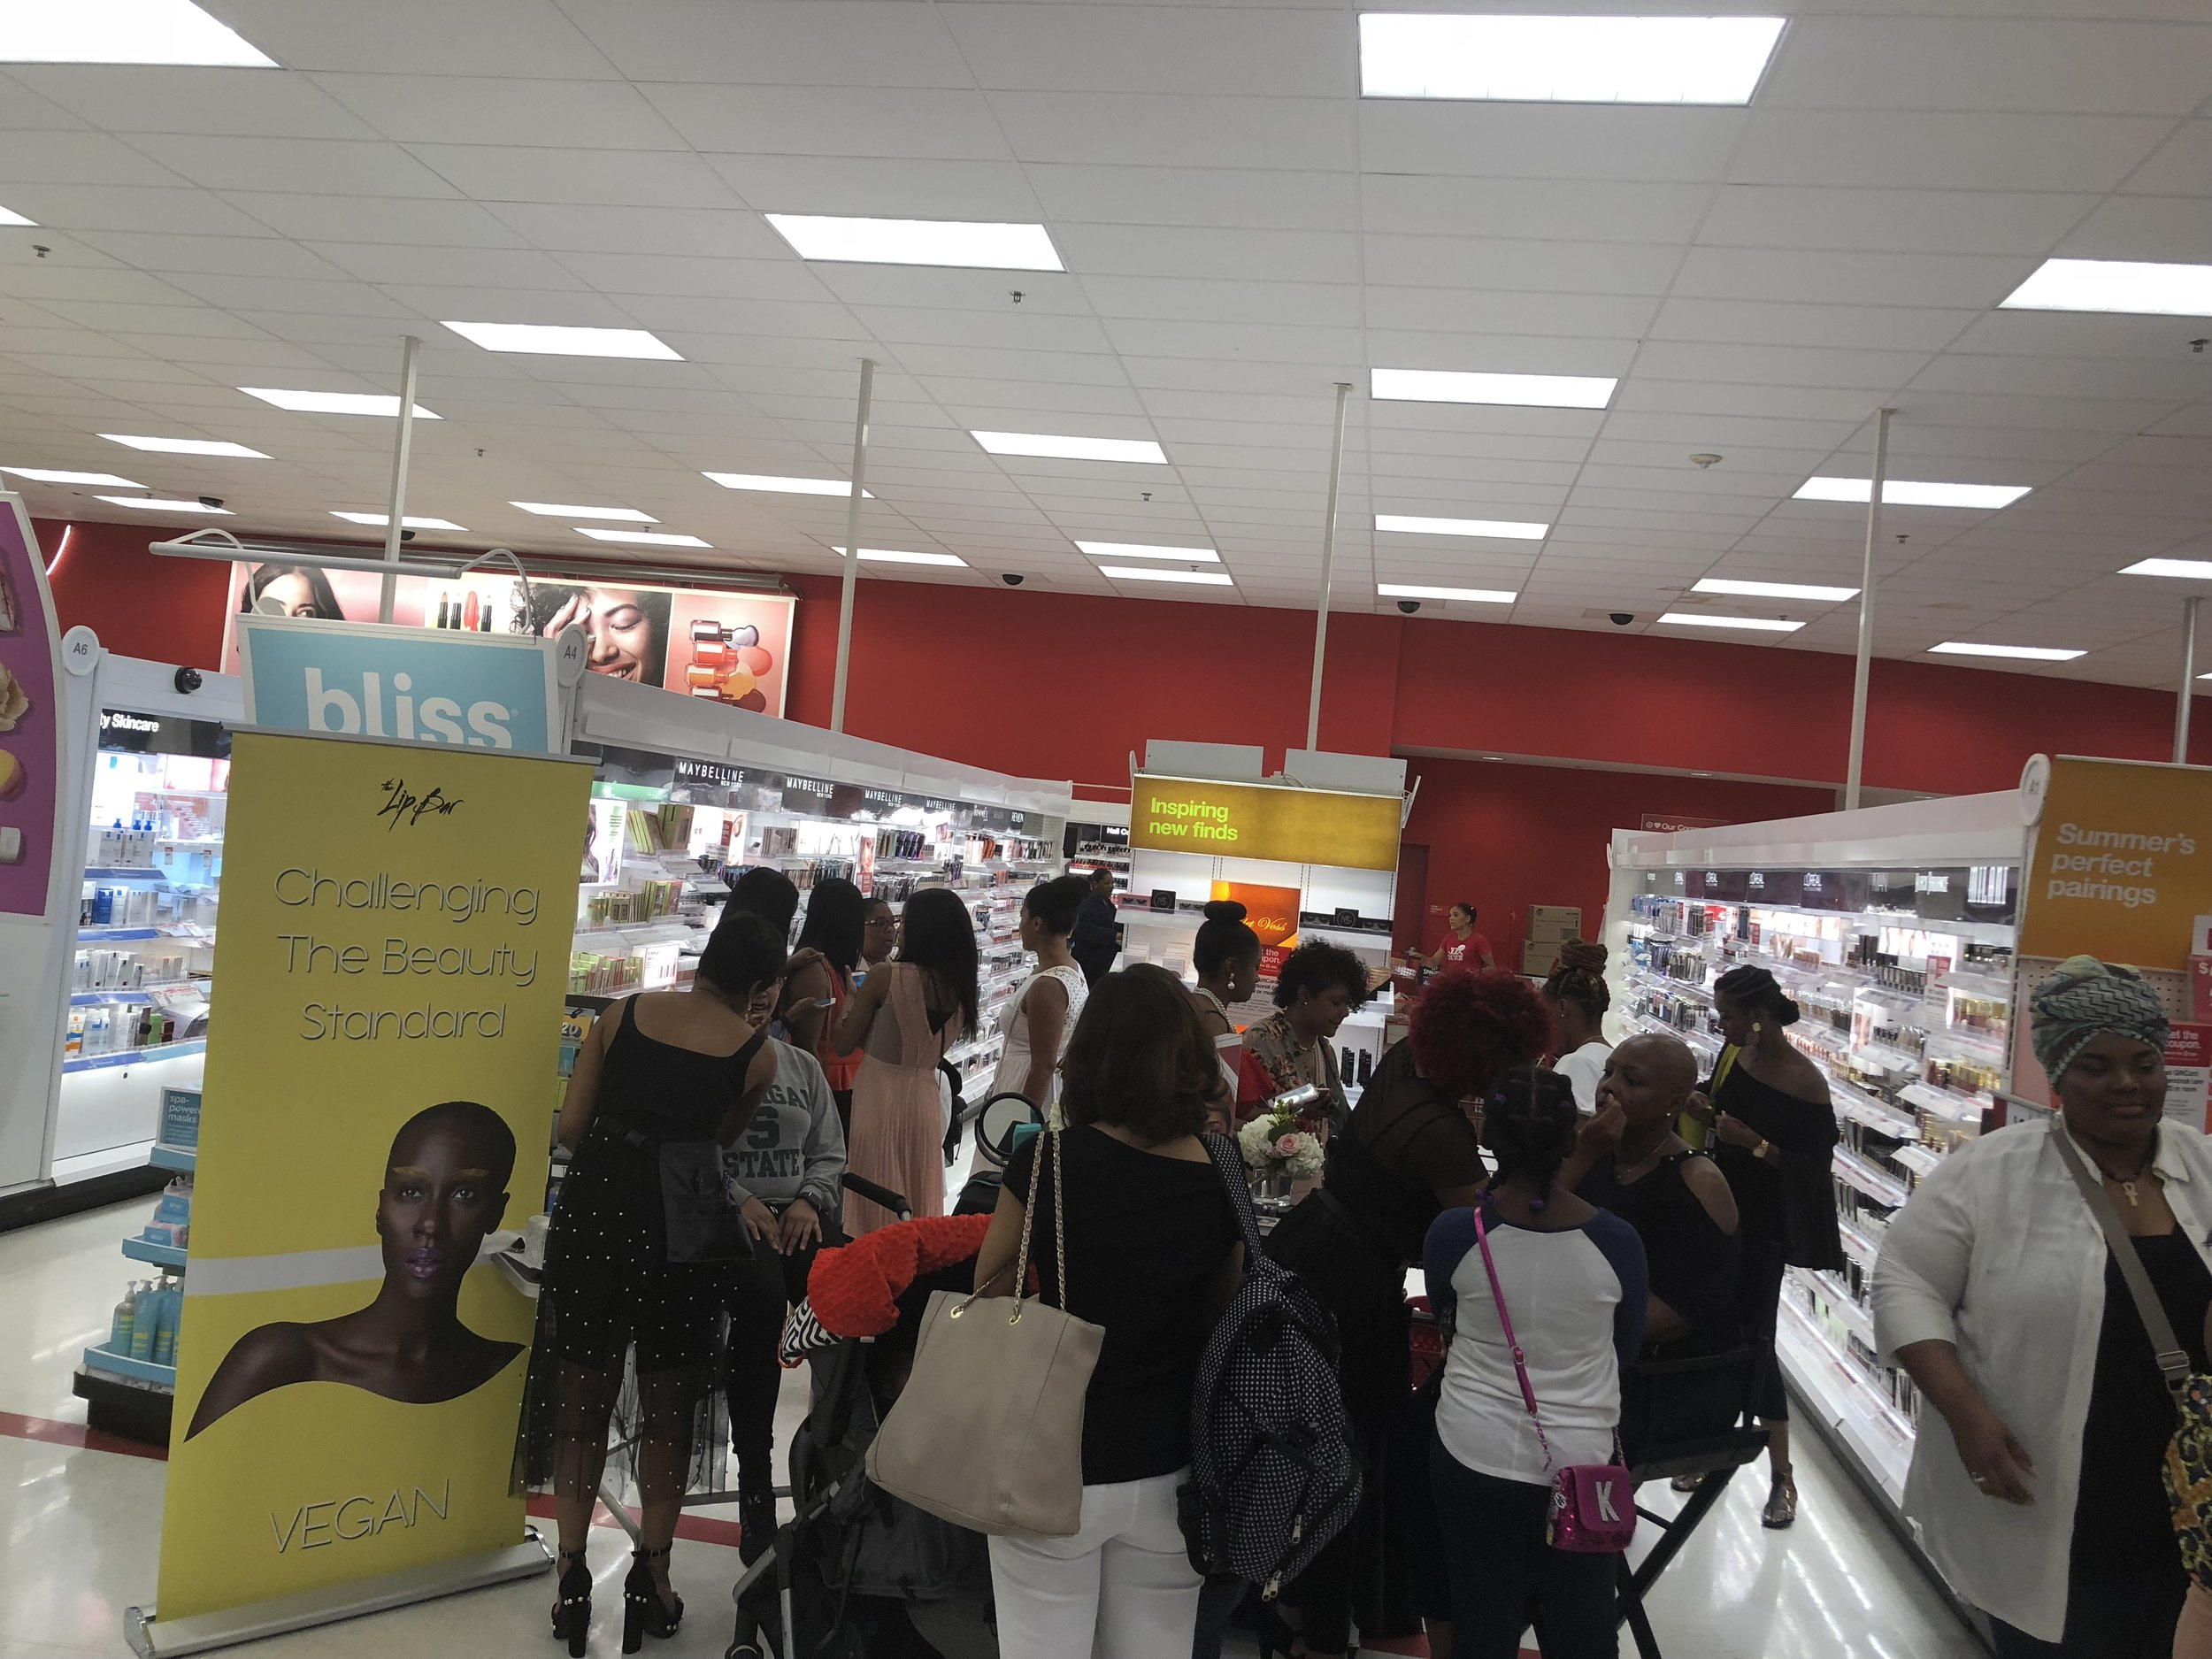 Photo from today's event at the Target located on Southfield Rd in Southfield, Mi.